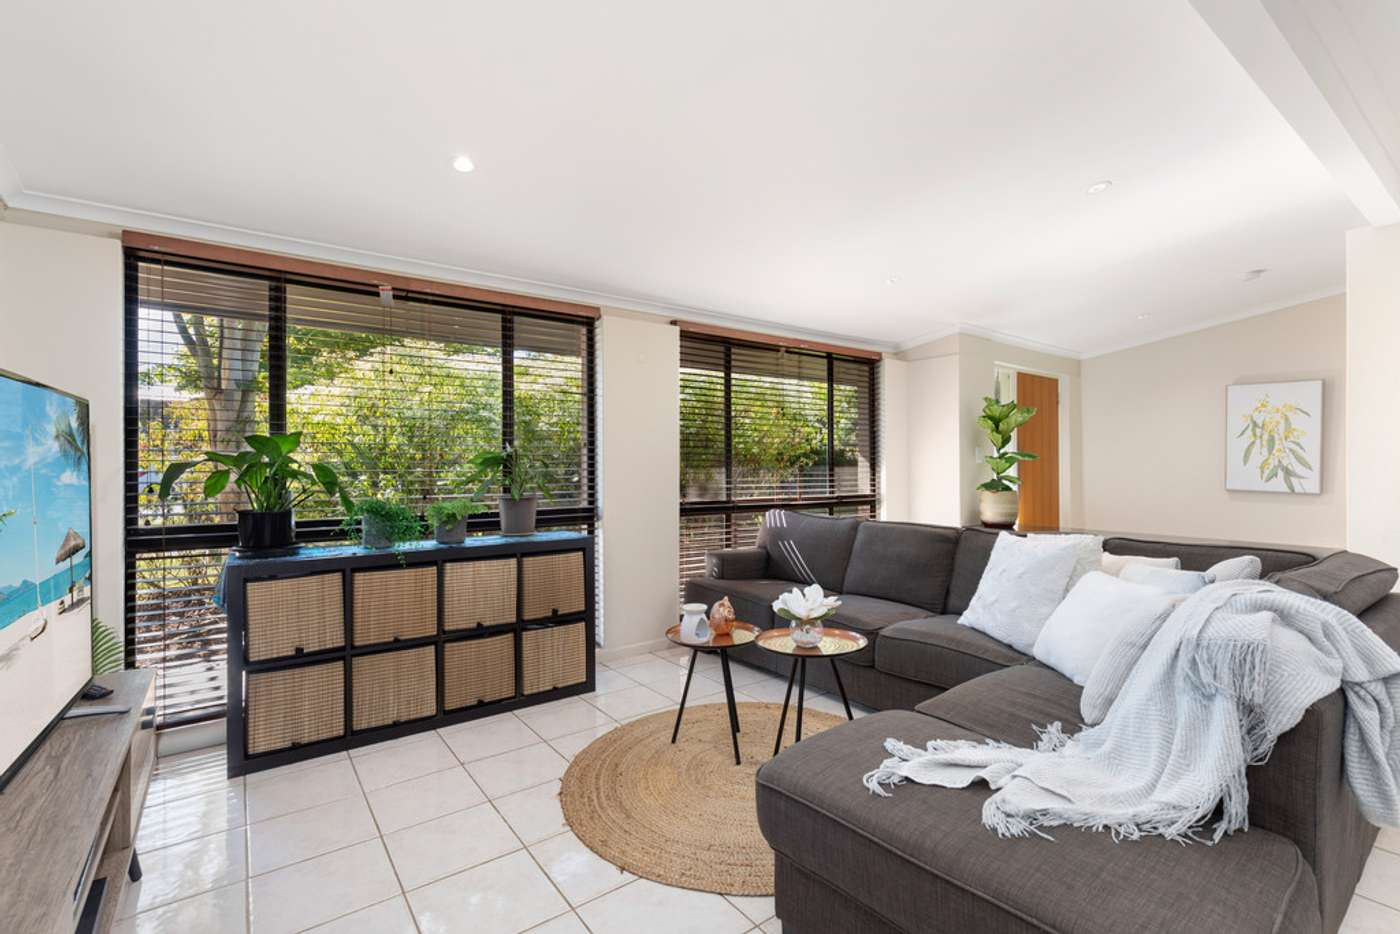 Fifth view of Homely house listing, 2 Wyong Court, Cornubia QLD 4130